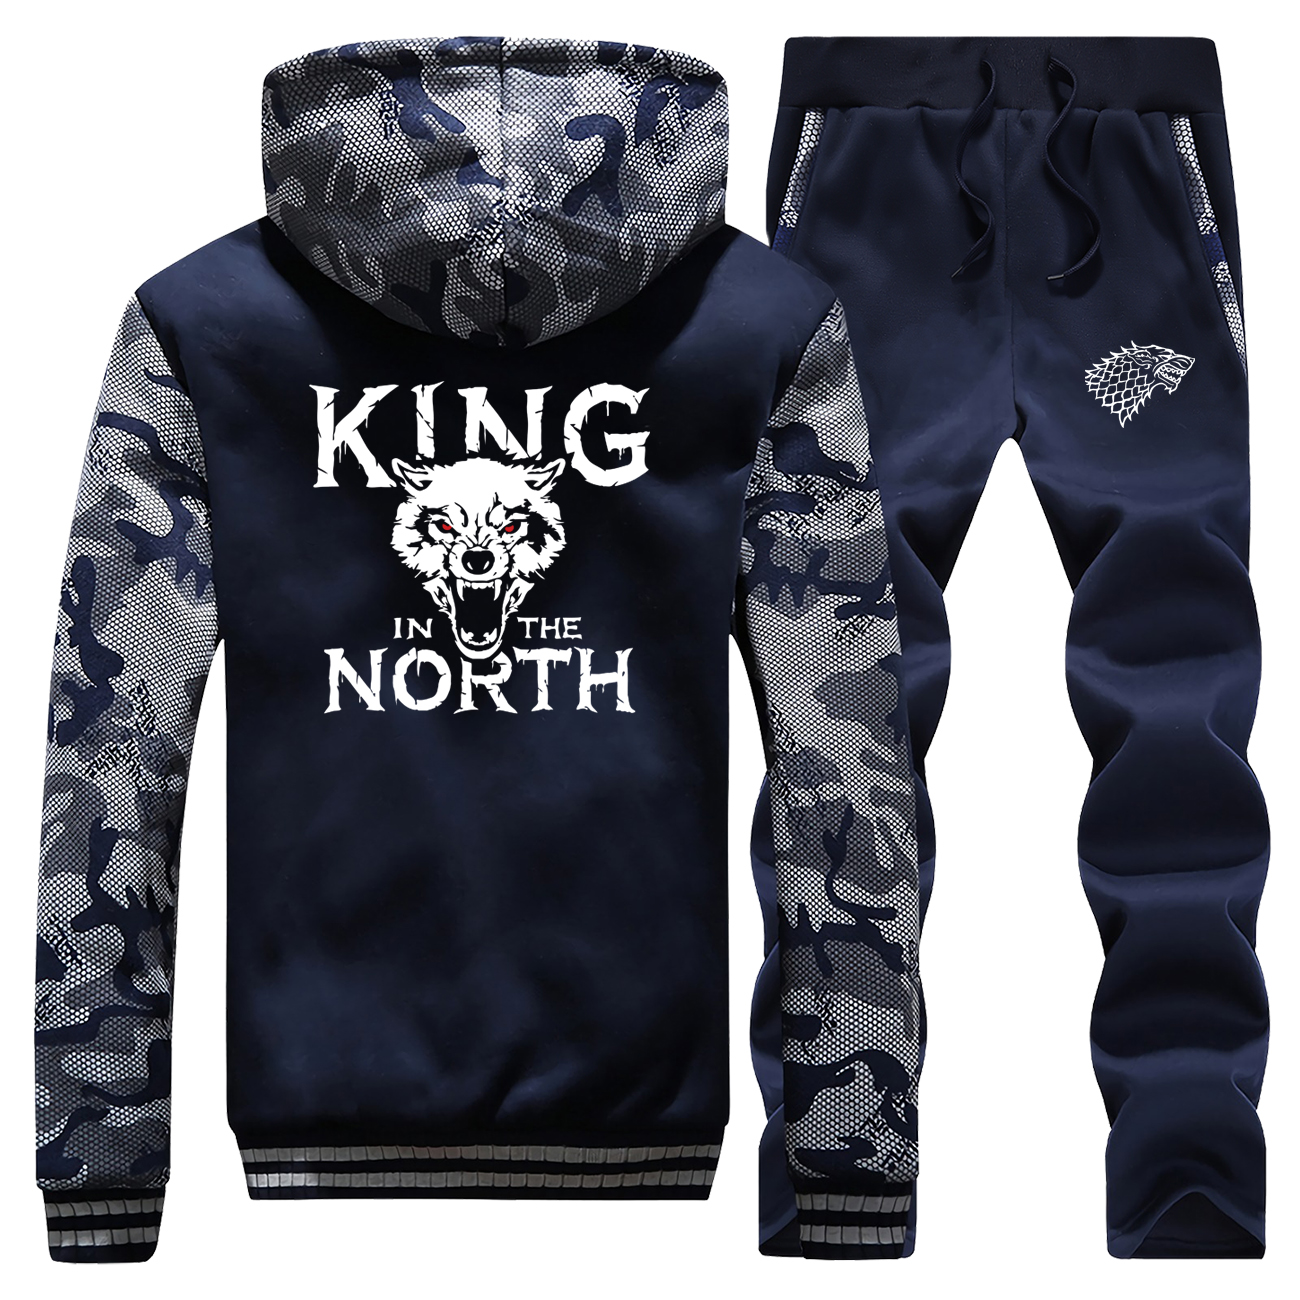 Game Of Thrones Hoodies Pants Set Men House Stark Tracksuit Coat Winterfell King In The North Winter Thick Jacket 2 Piece Sets